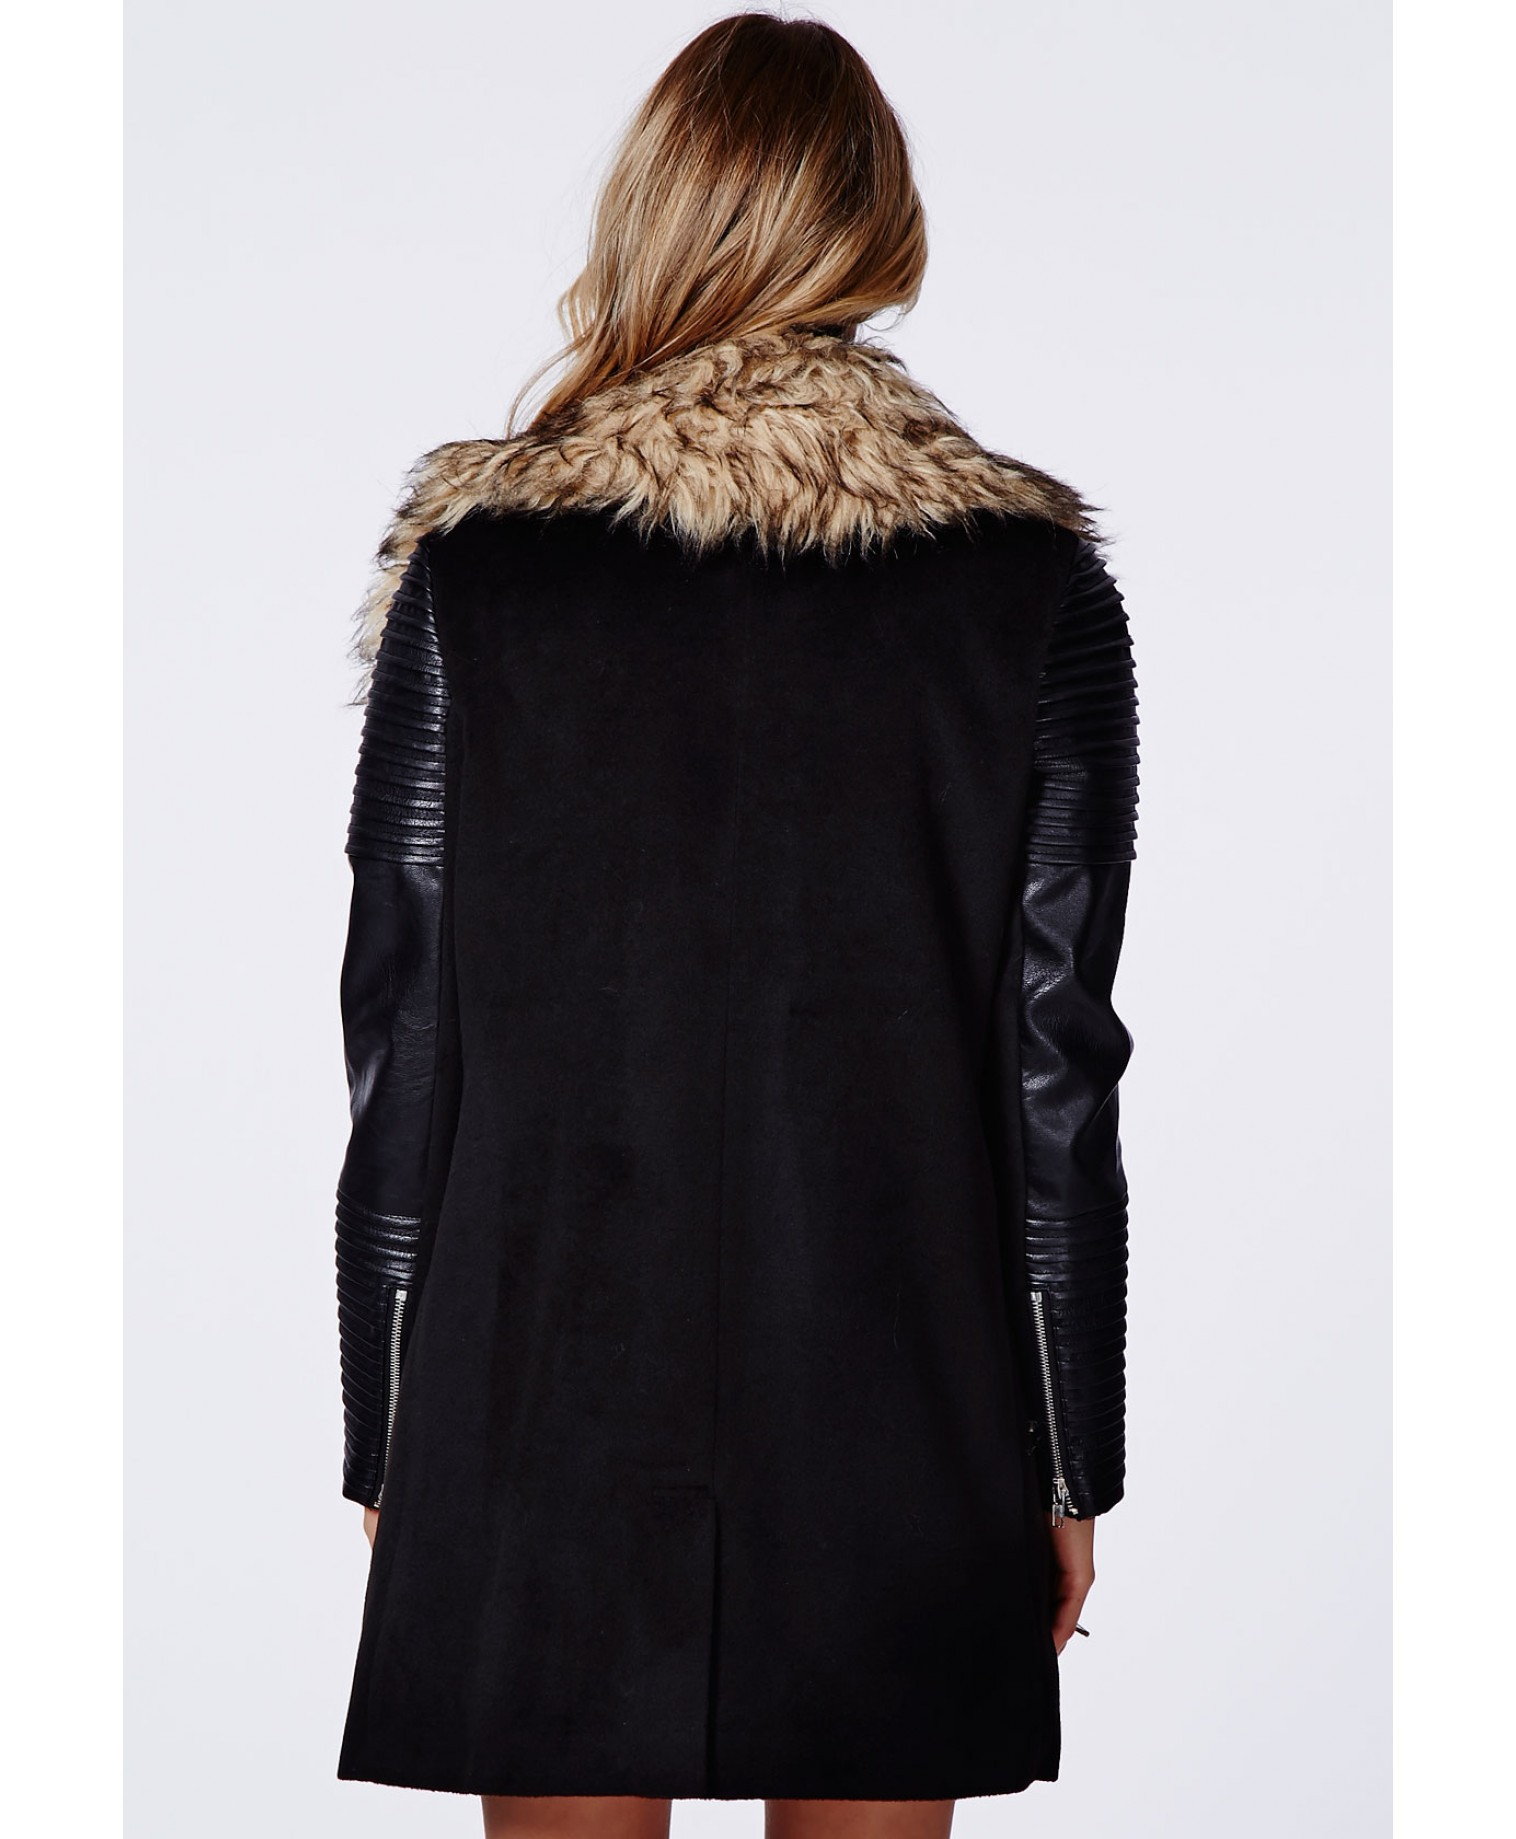 3ace22360ff Plus Size Faux Fur Coat XS 2XL Manteau Fourrure Femme Fur Collar Pu Leather  Sleeves Stitching Zipper Thickened Parkas For Women-in Faux Fur from Women s  ...